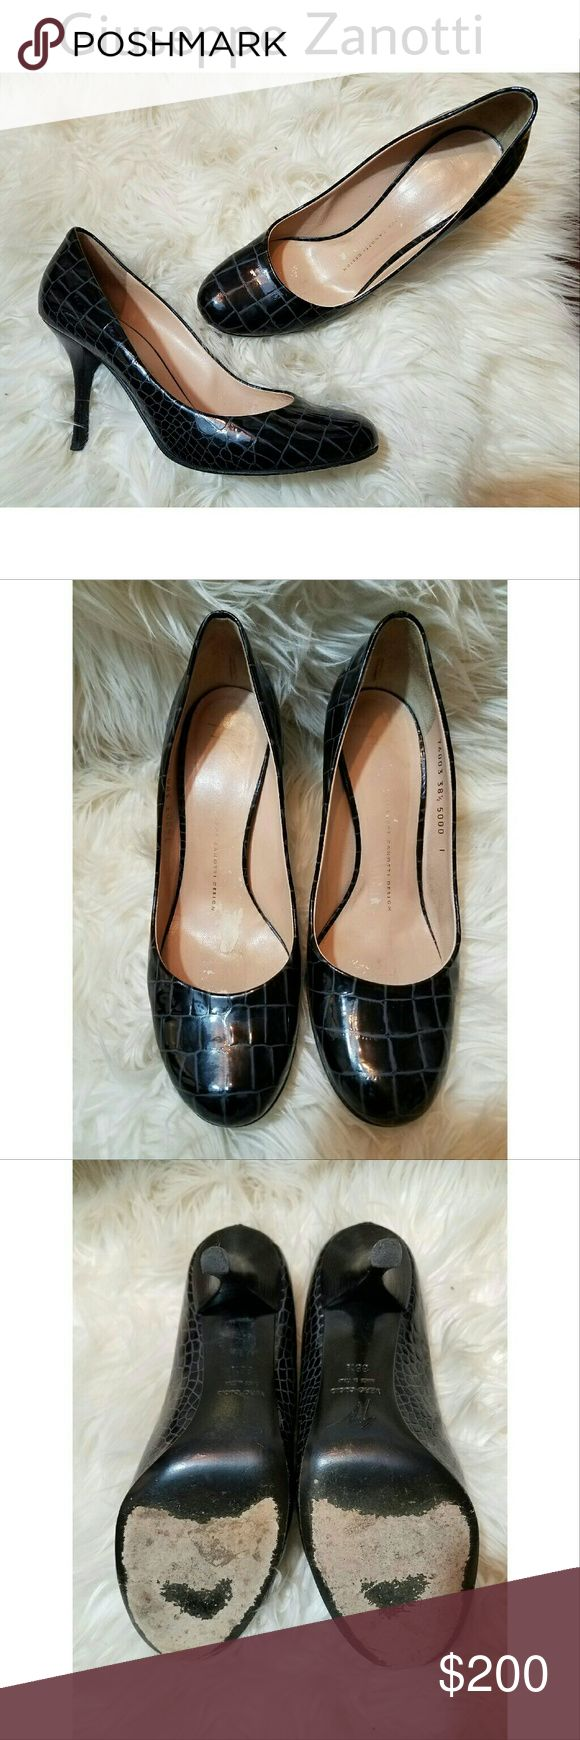 GIUSEPPE ZANOTTI Patent Leather Alligator Pumps Amazing, gorgeous quality! GIUSEPPE ZANOTTI DESIGN Black Patent Leather Alligator Pumps / Heels. Gorgeous condition! Any wear noted in photos.  Italian made Designer Giuseppe Zanotti   Size 38 1/2 Giuseppe Zanotti Shoes Heels